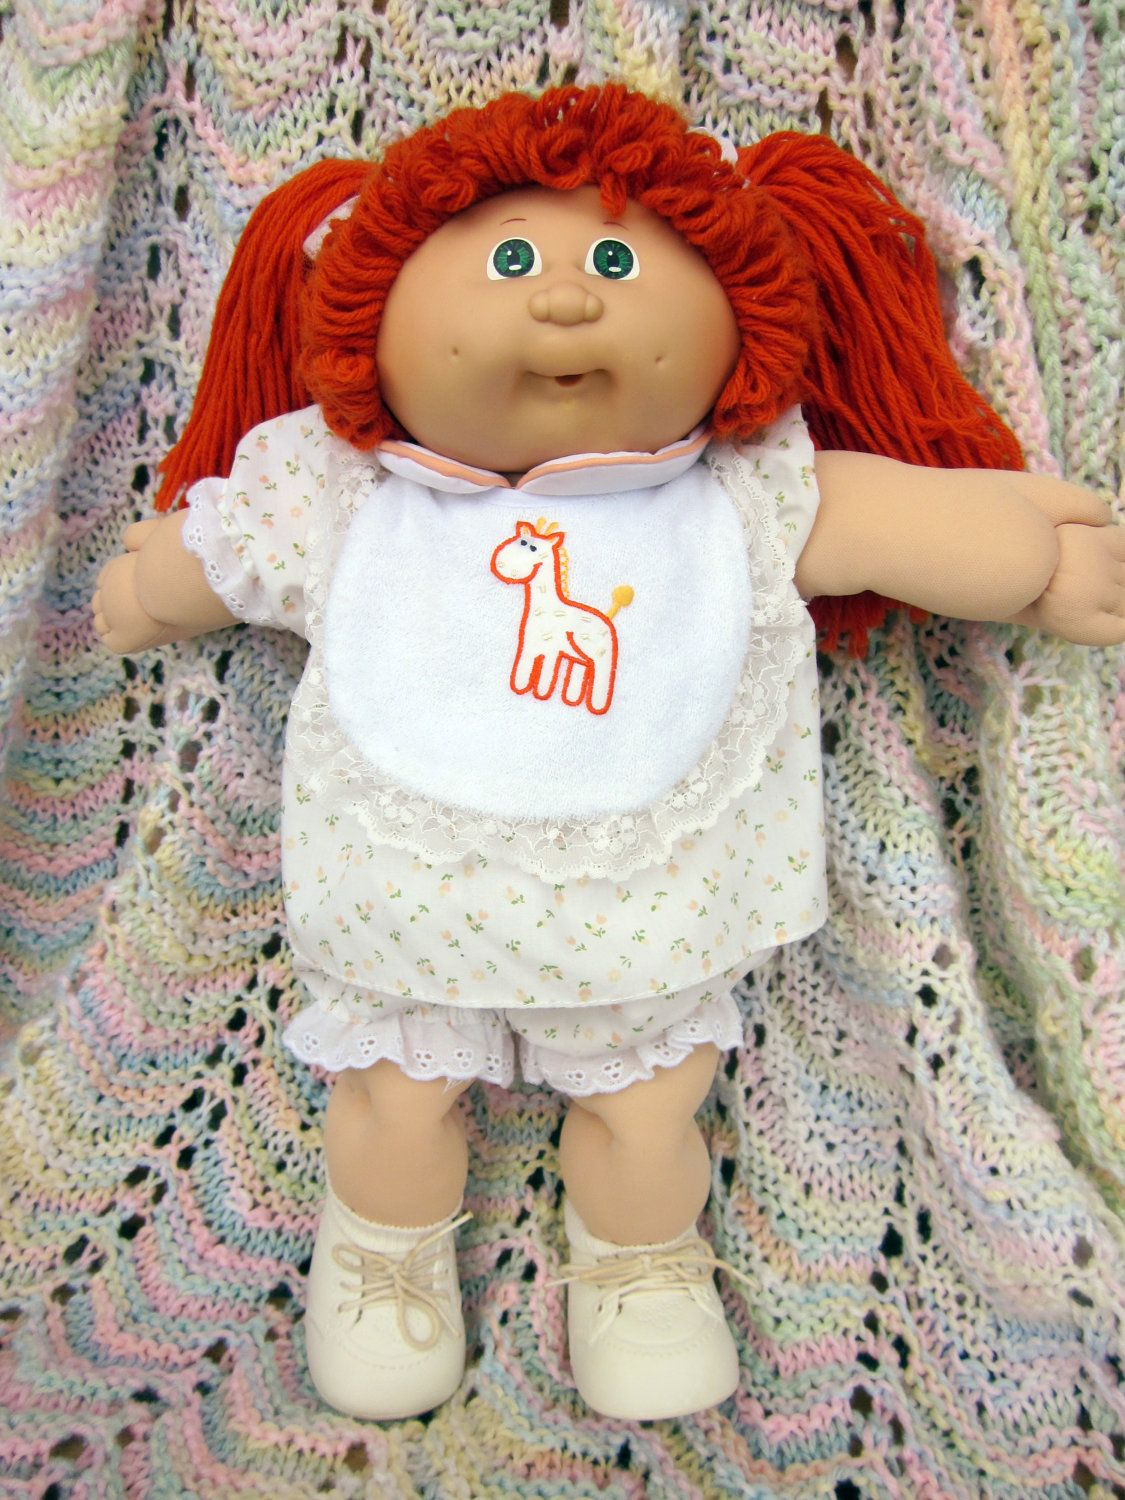 Vintage Cabbage Patch Kid Doll Red Hair Green Eyes Etsy Cabbage Patch Kids Dolls Cabbage Patch Dolls Cabbage Patch Babies